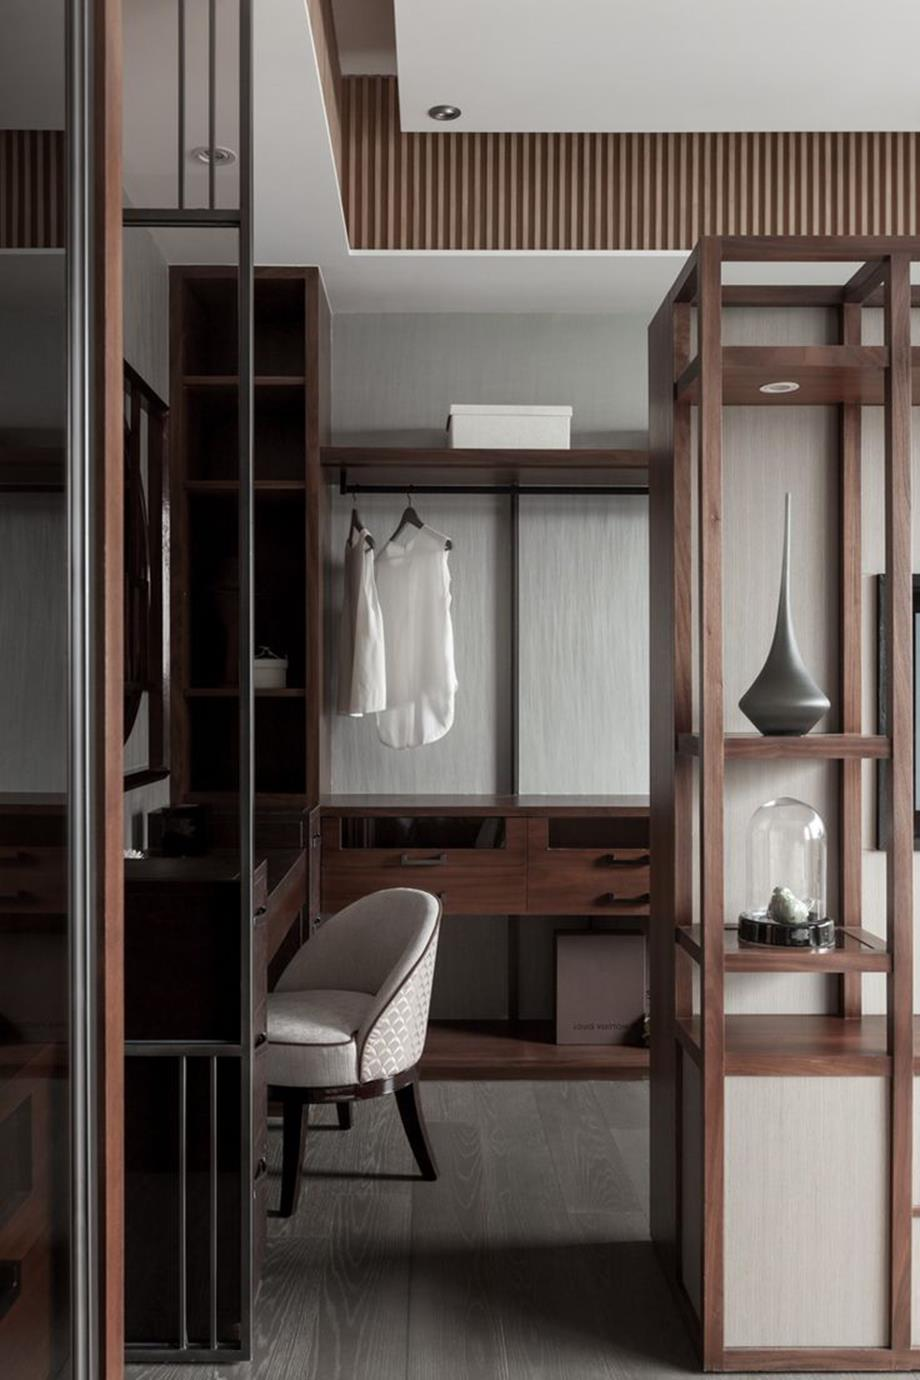 Dressing Rooms Designs Pictures: Small Dressing Room Design Ideas 7